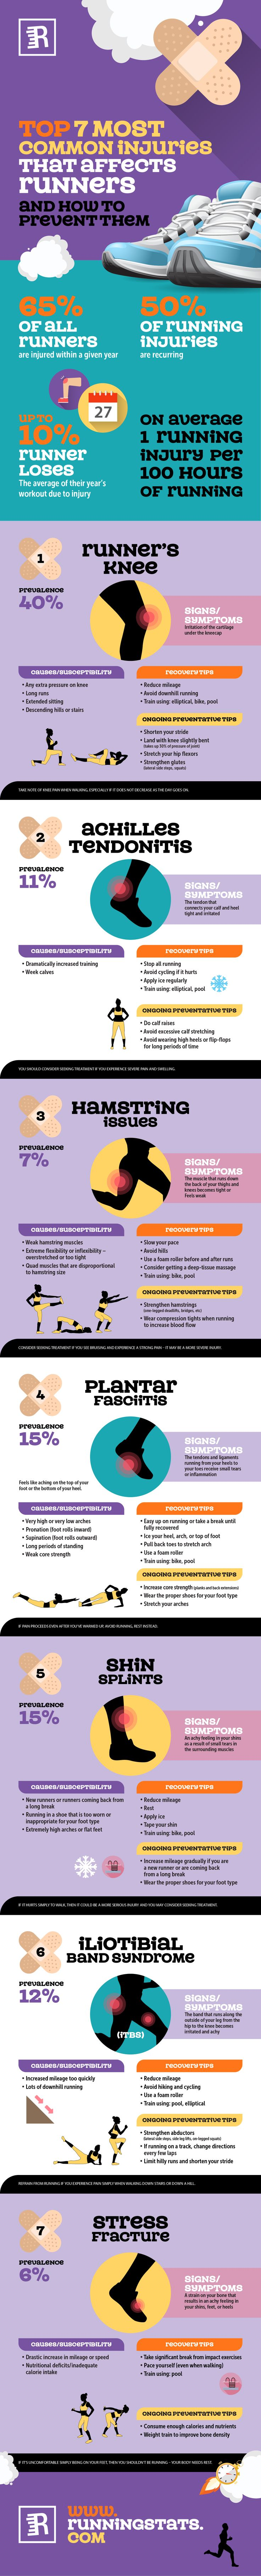 A staggering statistic shows that 65% of all runners are injured within a given year. A statistic that reveals runners are suffering from common injuries that are avoidable. 50% of injuries are recurring injuries. http://www.runningstats.com/common-running-injuries/  By equipping yourself with the right knowledge, you can avoid injuries.